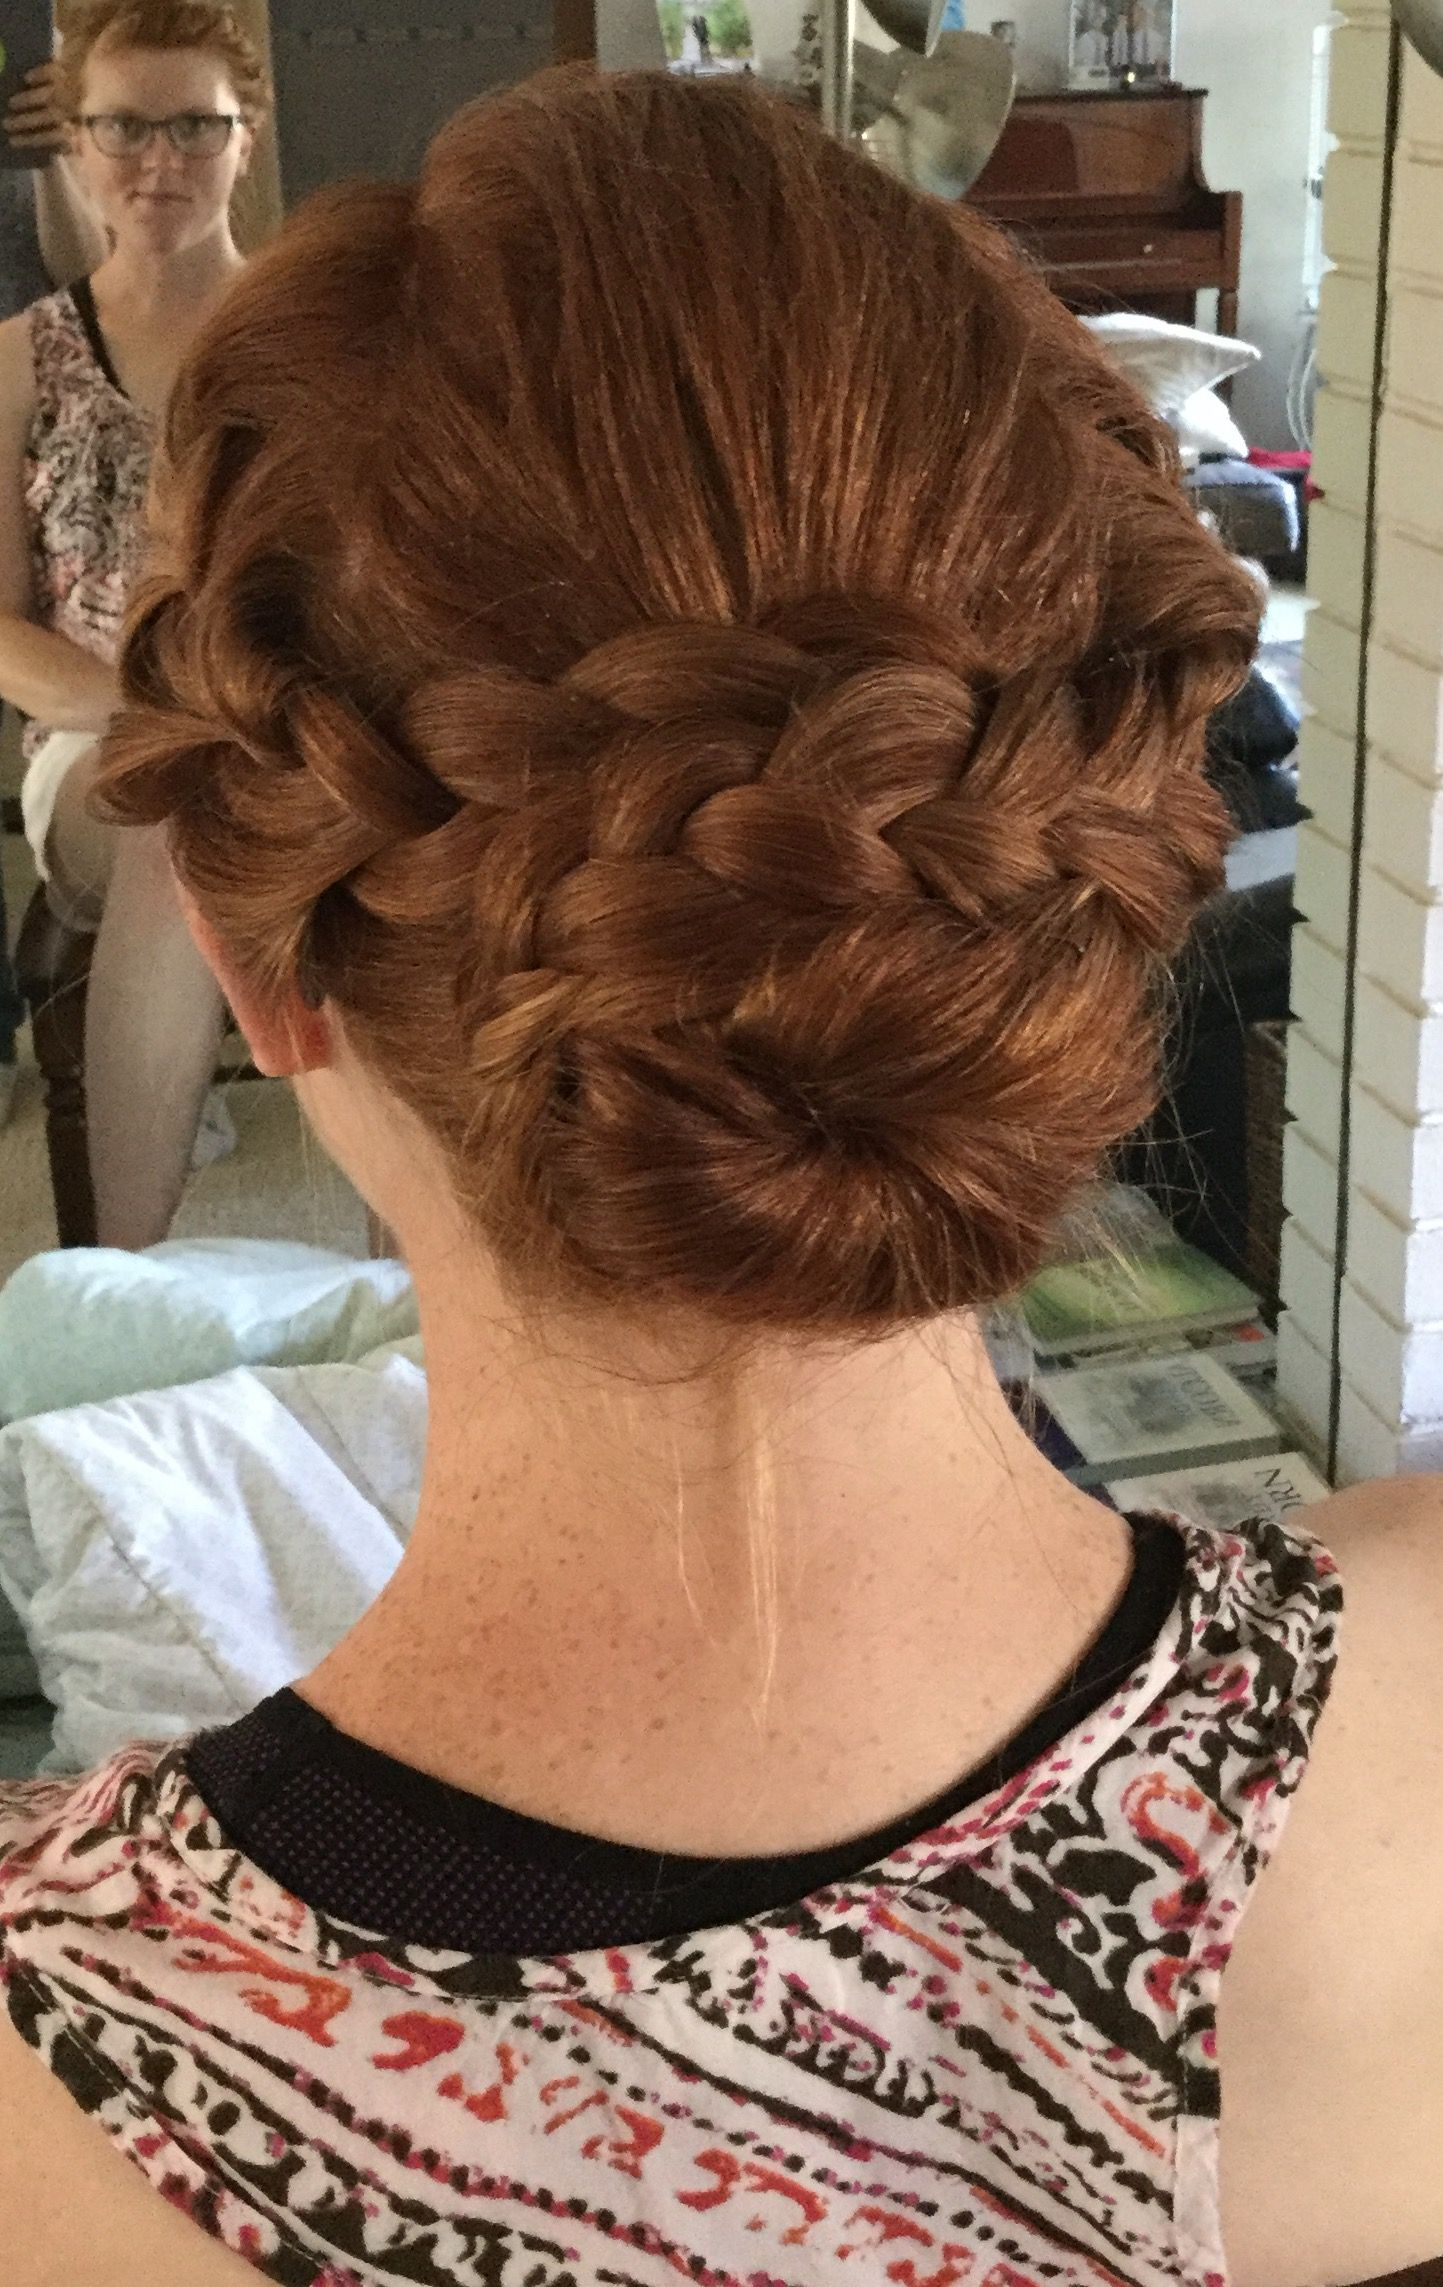 So Cal summer wedding hairstyle from Pinterest done by Jessie